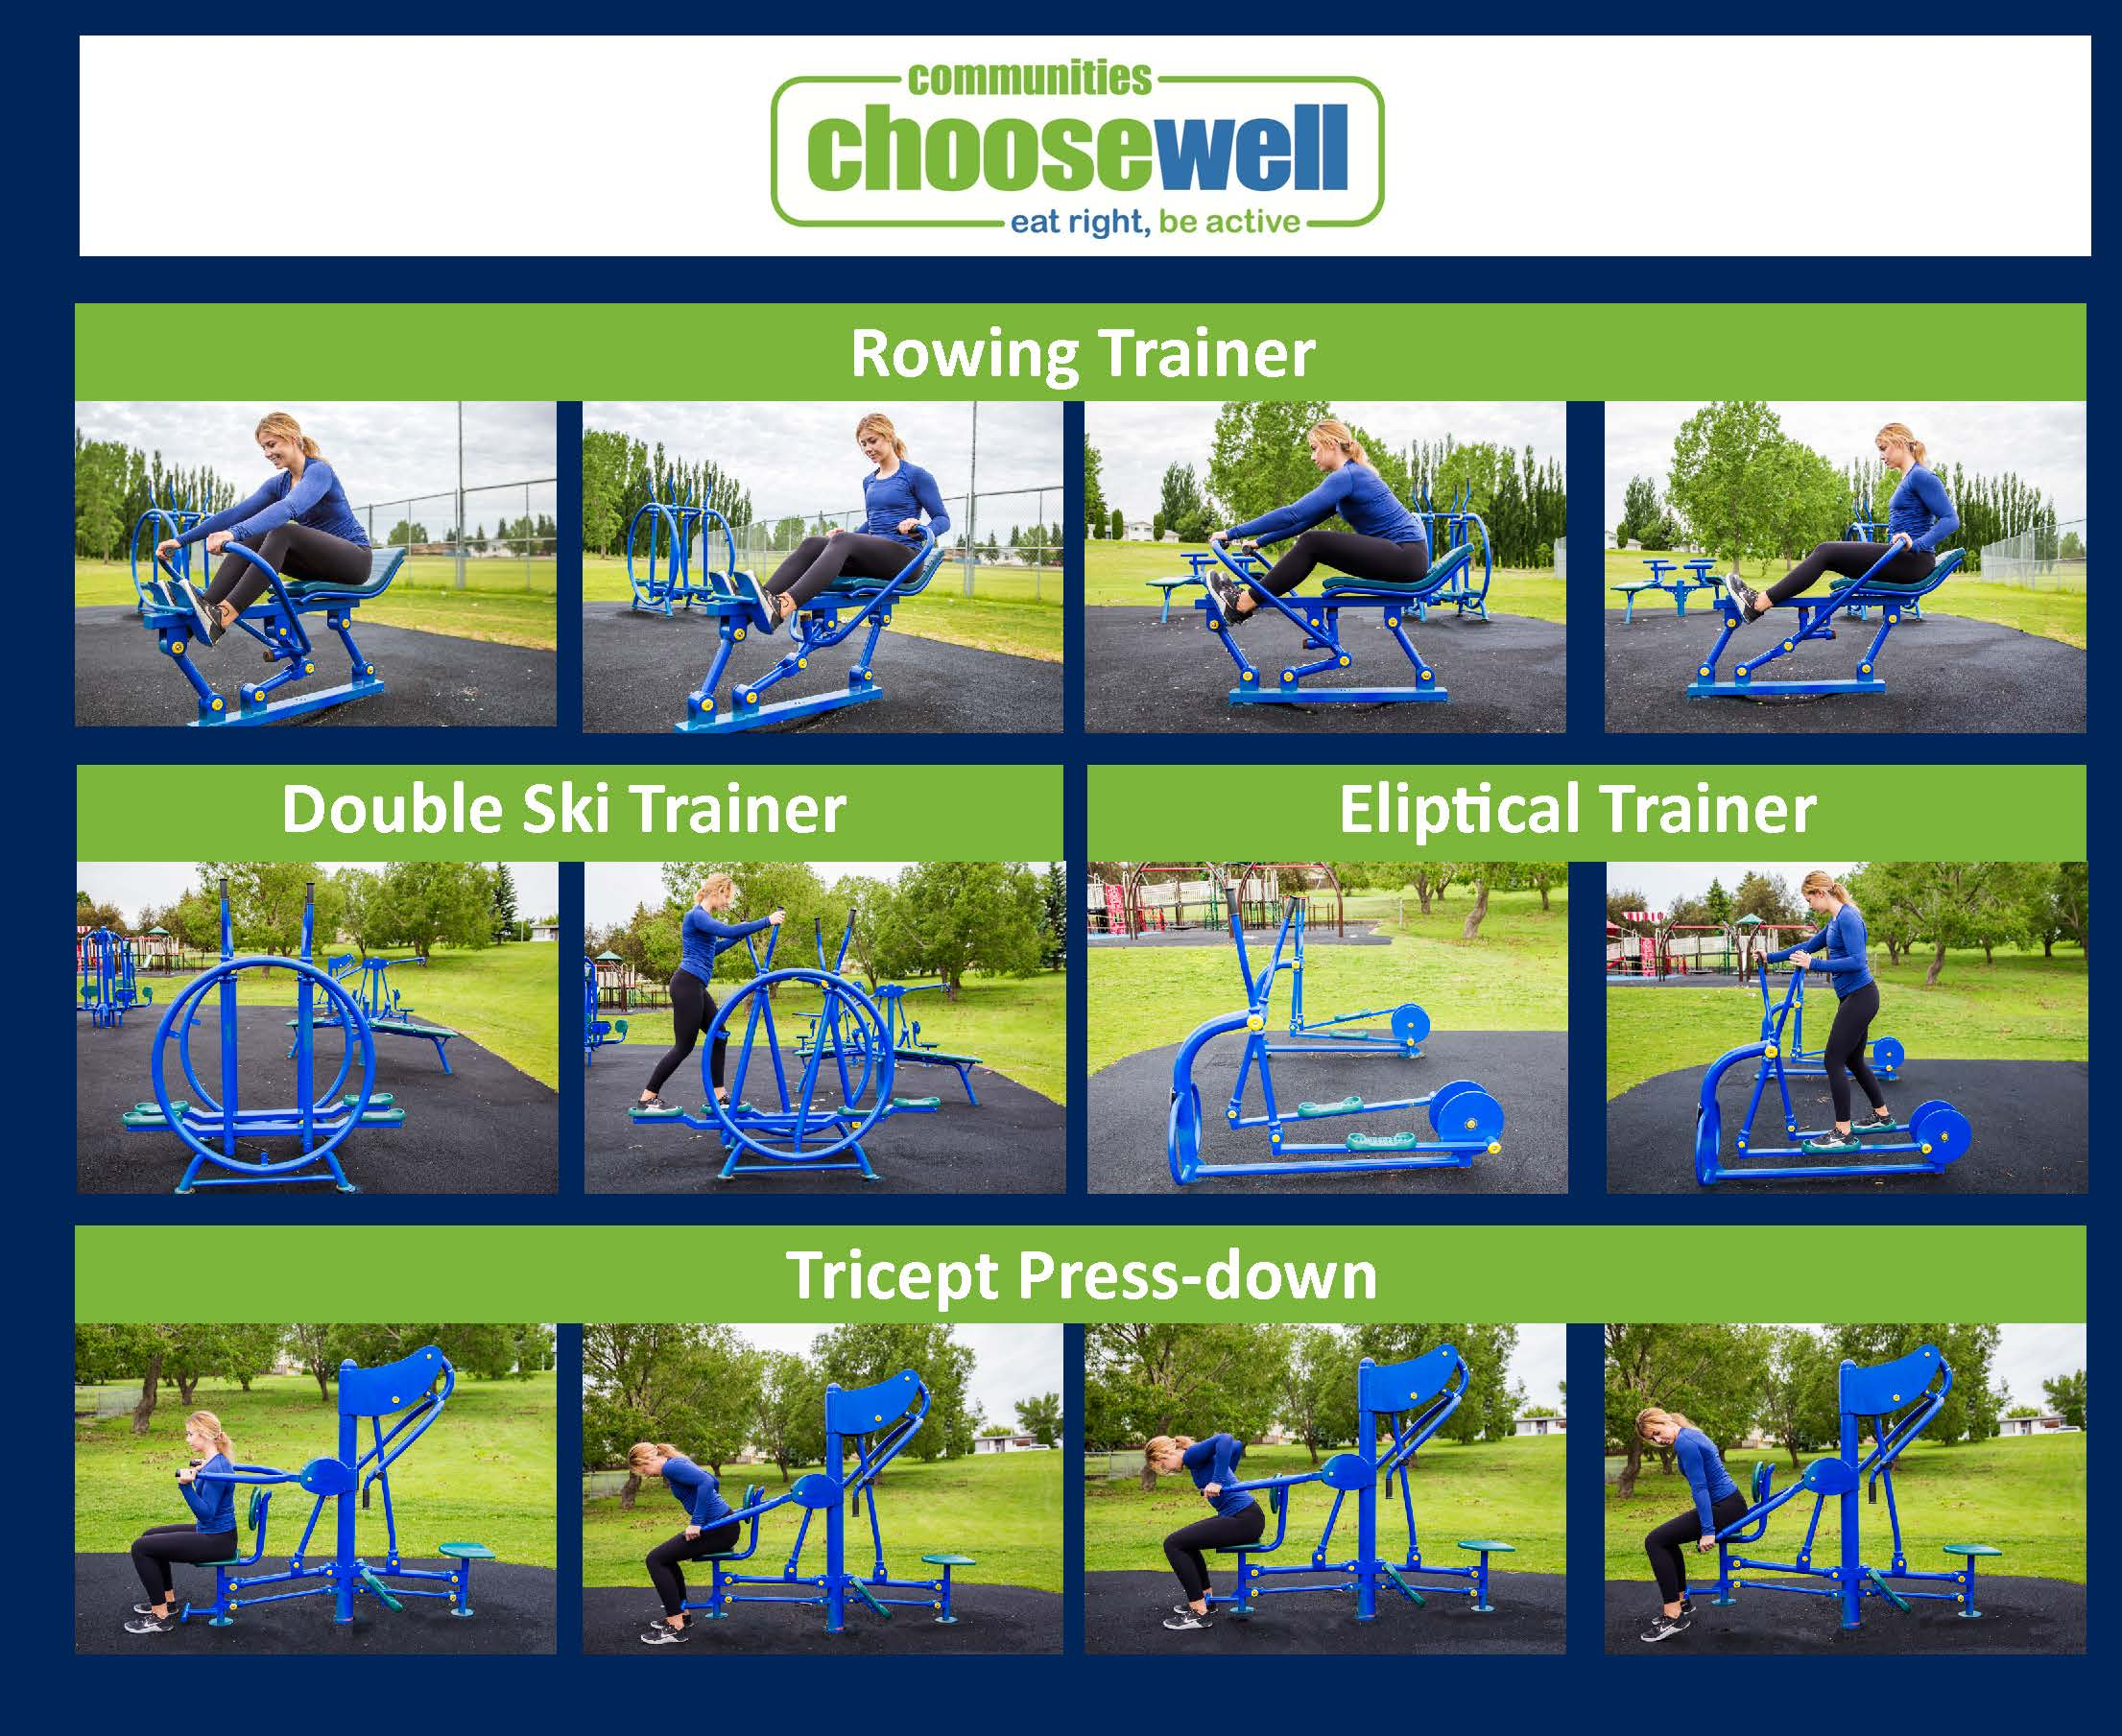 Collage of Rowing Trainer, Double Ski Trainer, Elliptical Trainer, and Tricept Press-down equipment